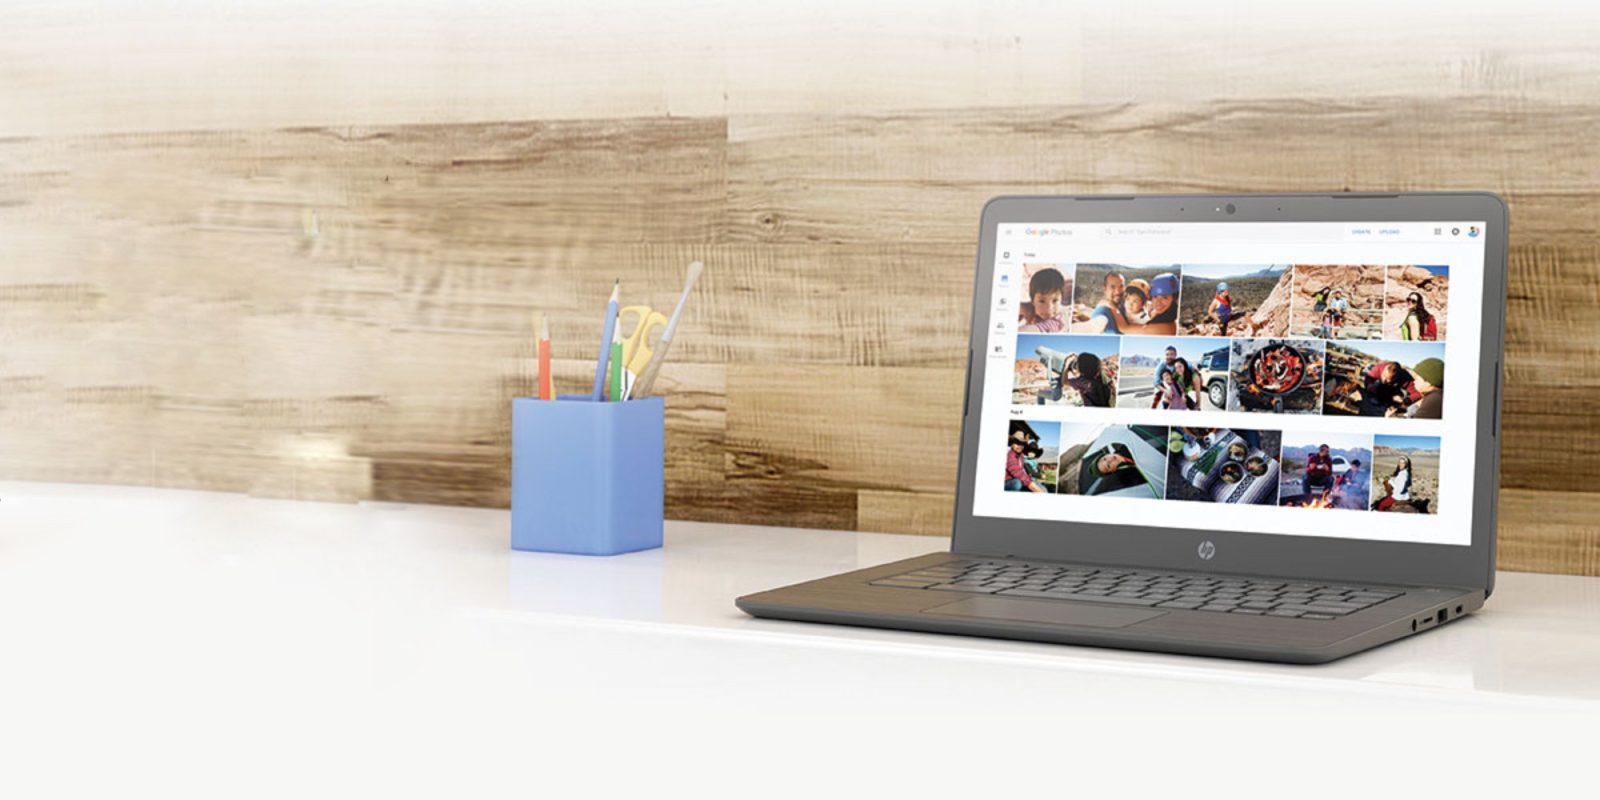 HP's $169 Chromebook has a 14-inch display + 100GB Google Drive (All-time low)